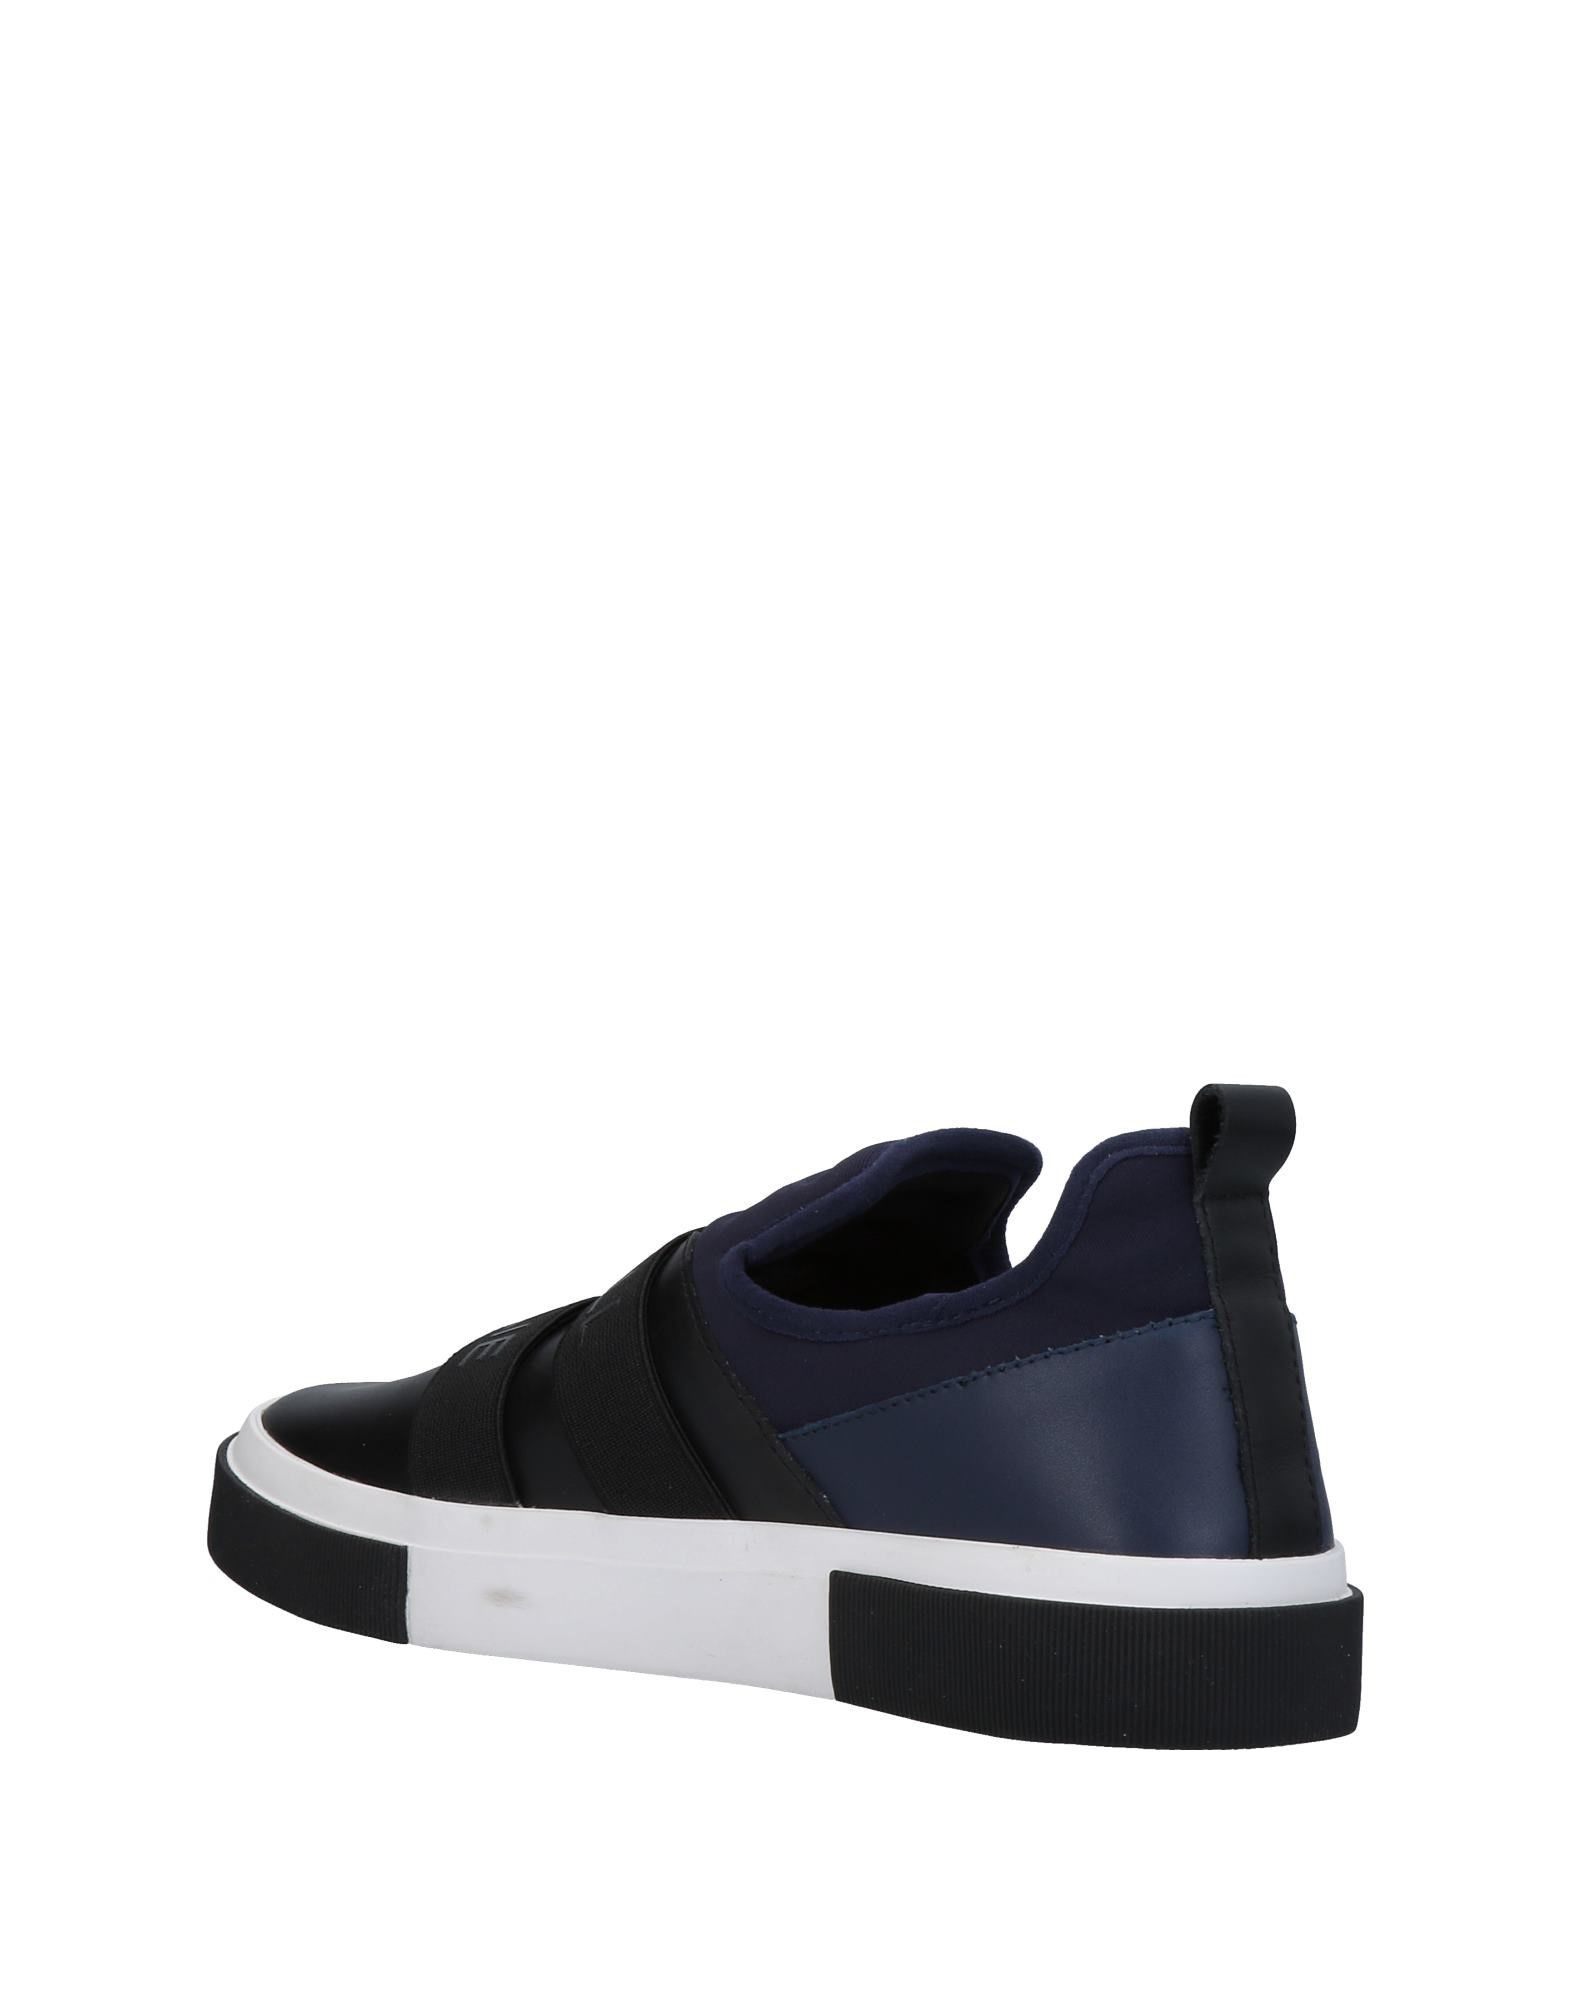 Kendall Kendall Kendall + Kylie Sneakers - Women Kendall + Kylie Sneakers online on  United Kingdom - 11334785SD 27148b